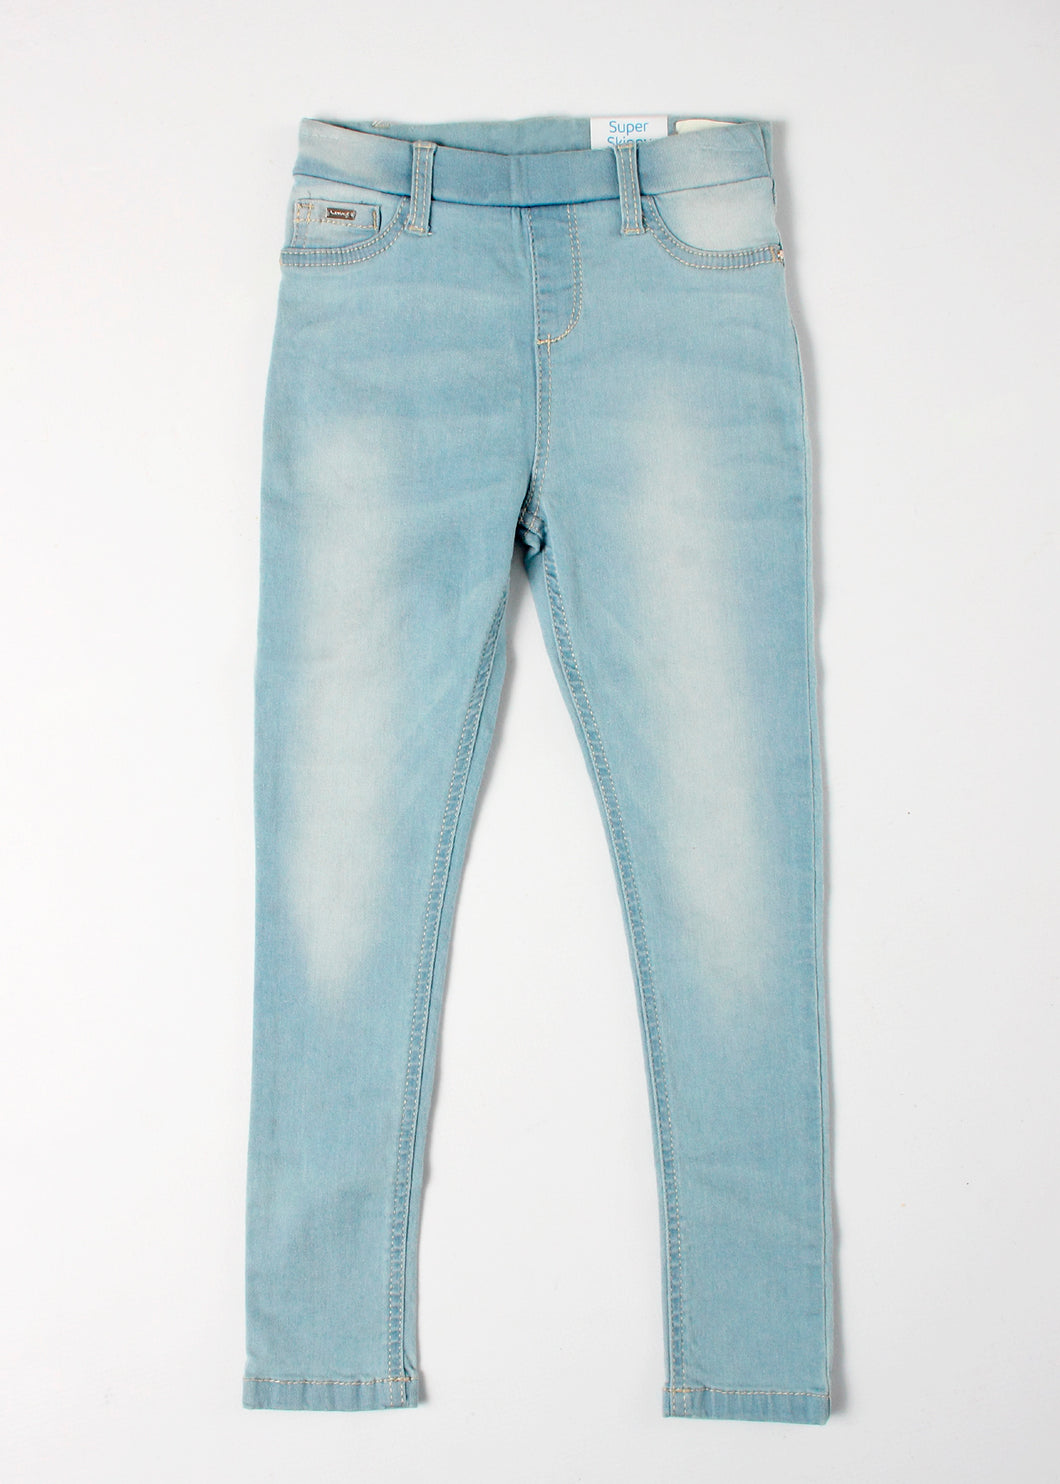 denim pull on jegging - girls